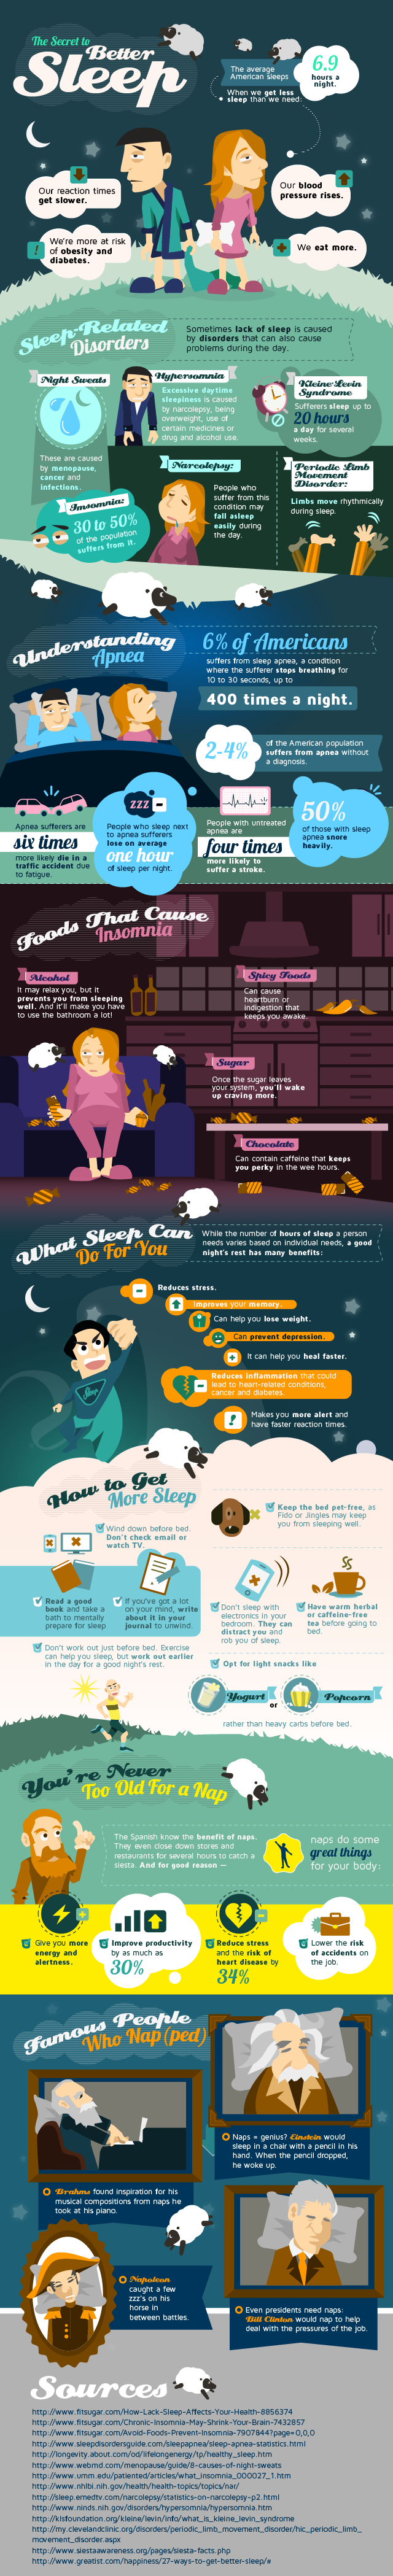 Tips to Getting a Better Sleep